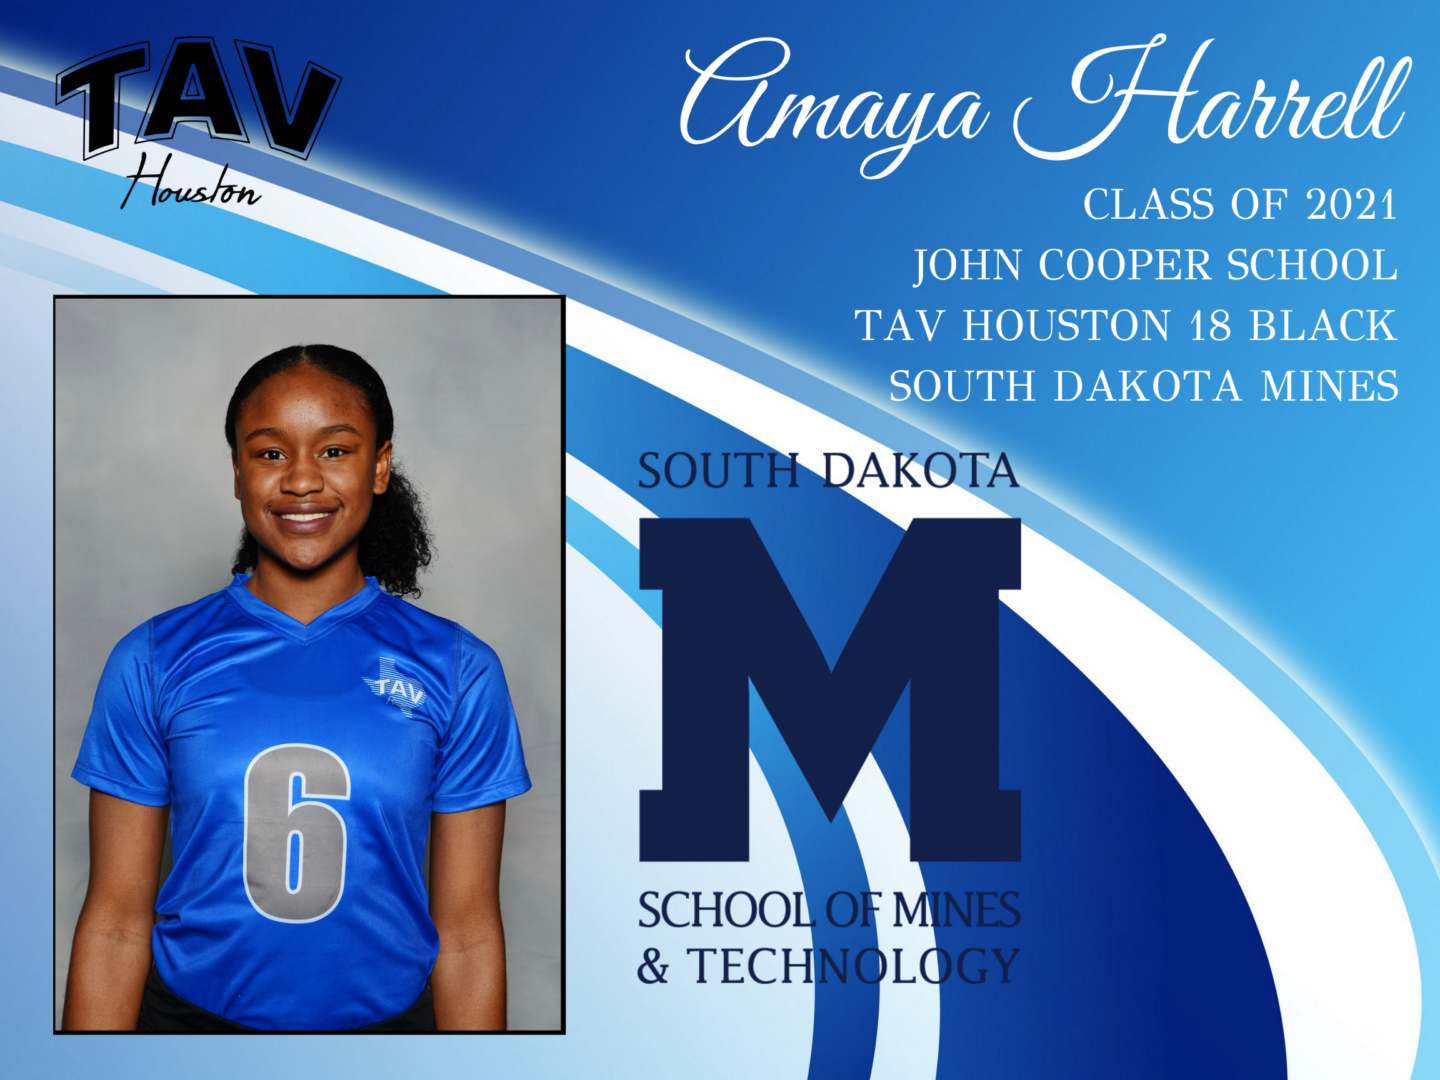 Amaya Harrell - S. Dakota School of Mines